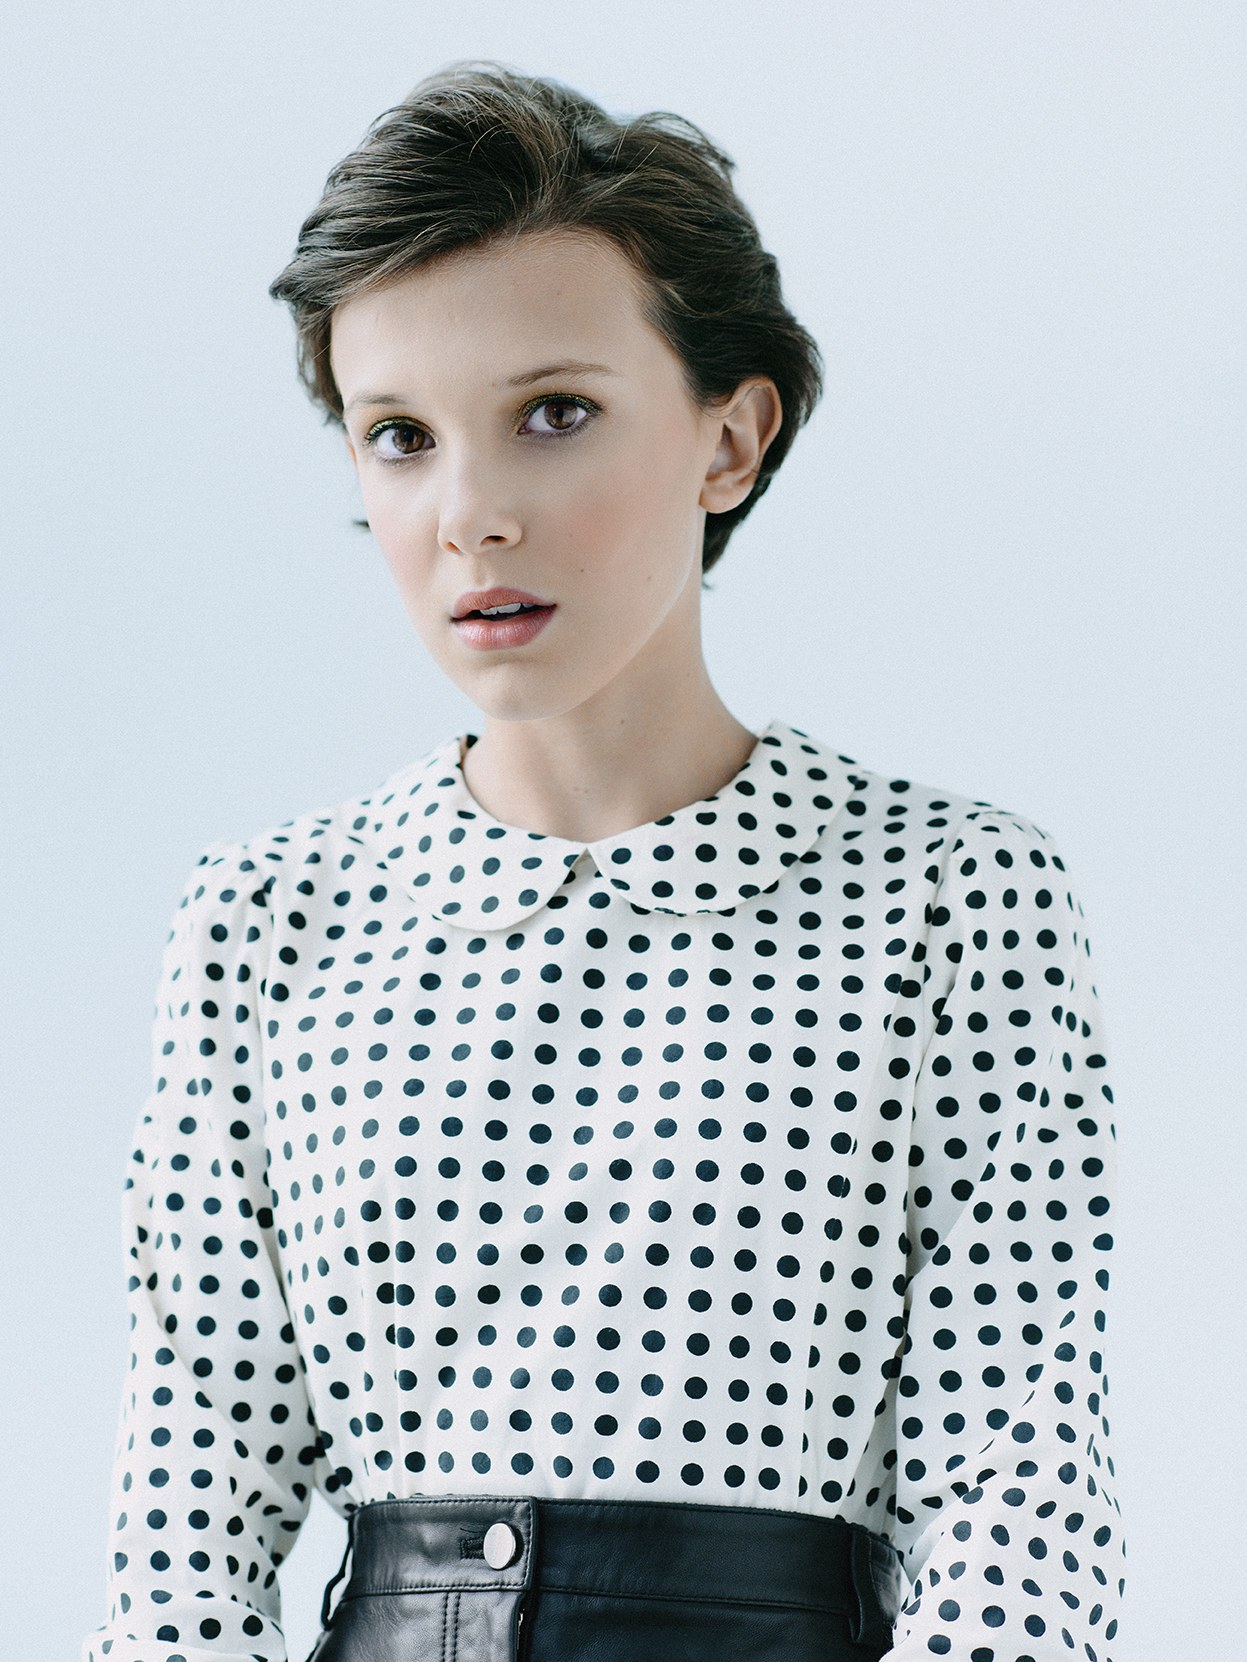 Millie Bobby Brown - Award winning English actress known for playing Eleven on Stranger Things